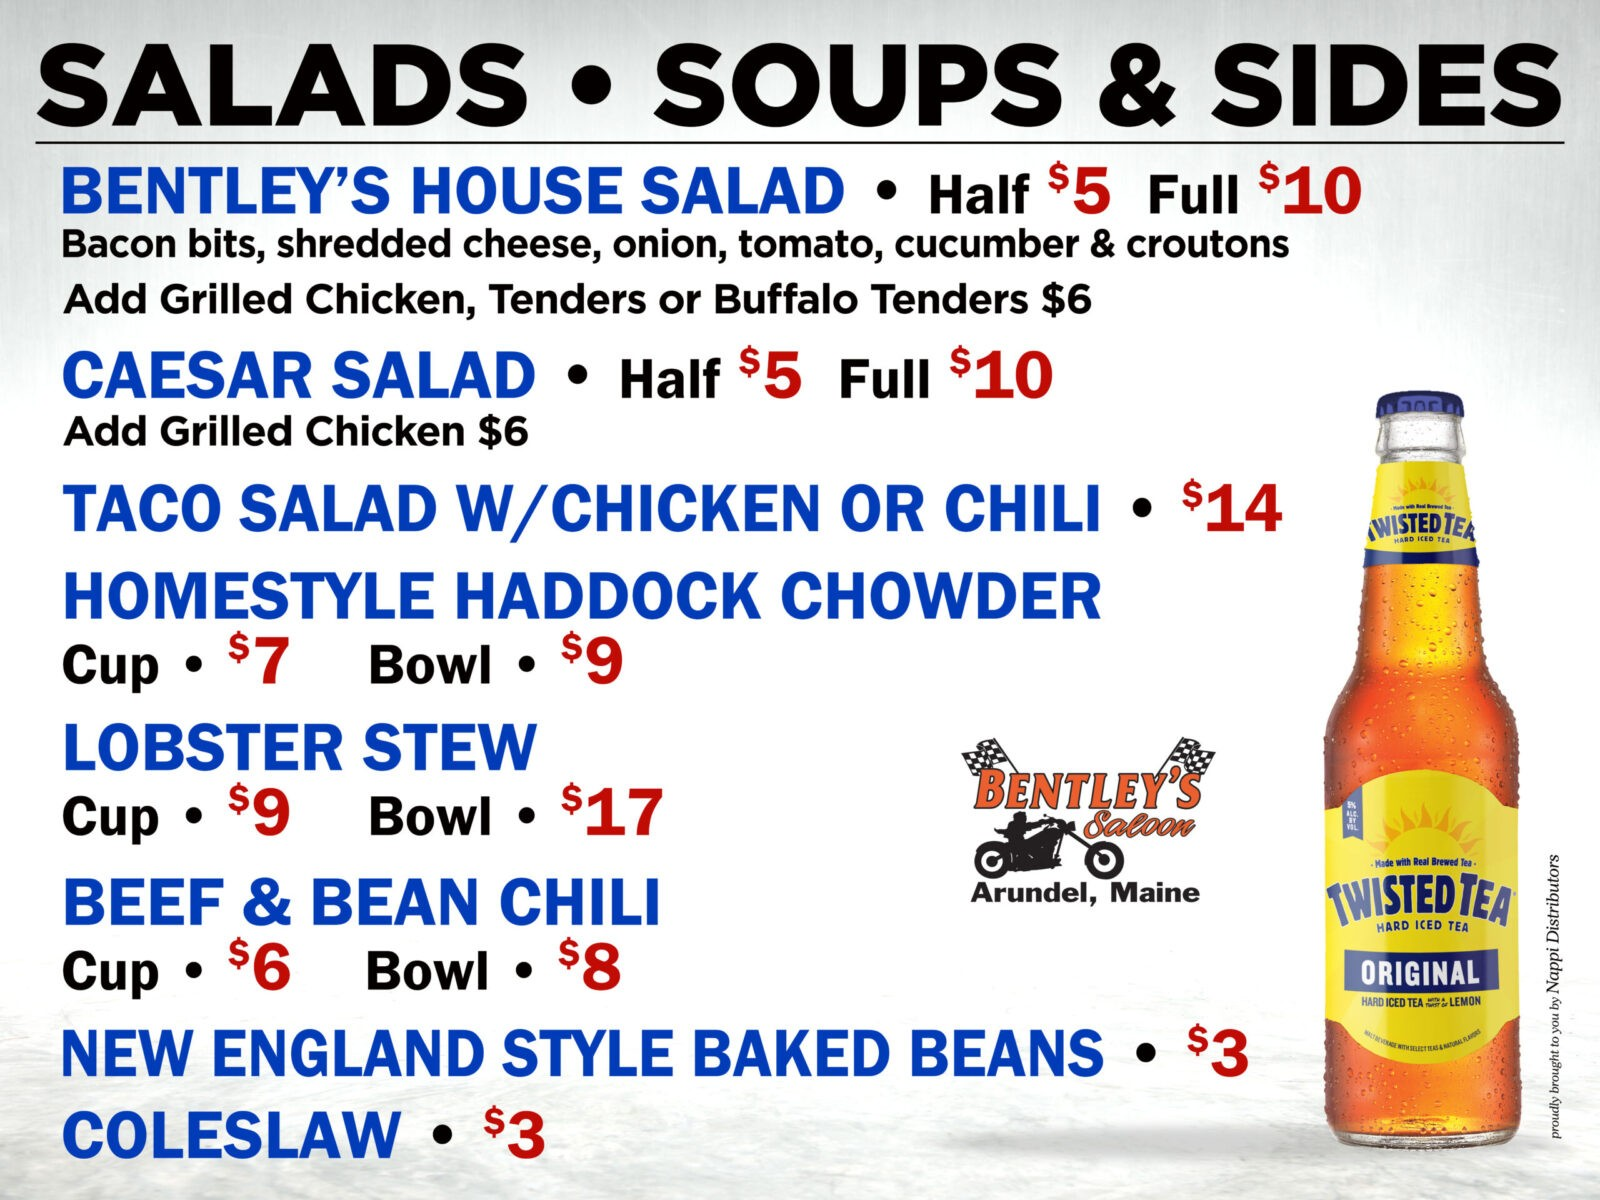 Bentley's Salad_Soup_Sides Board 2021